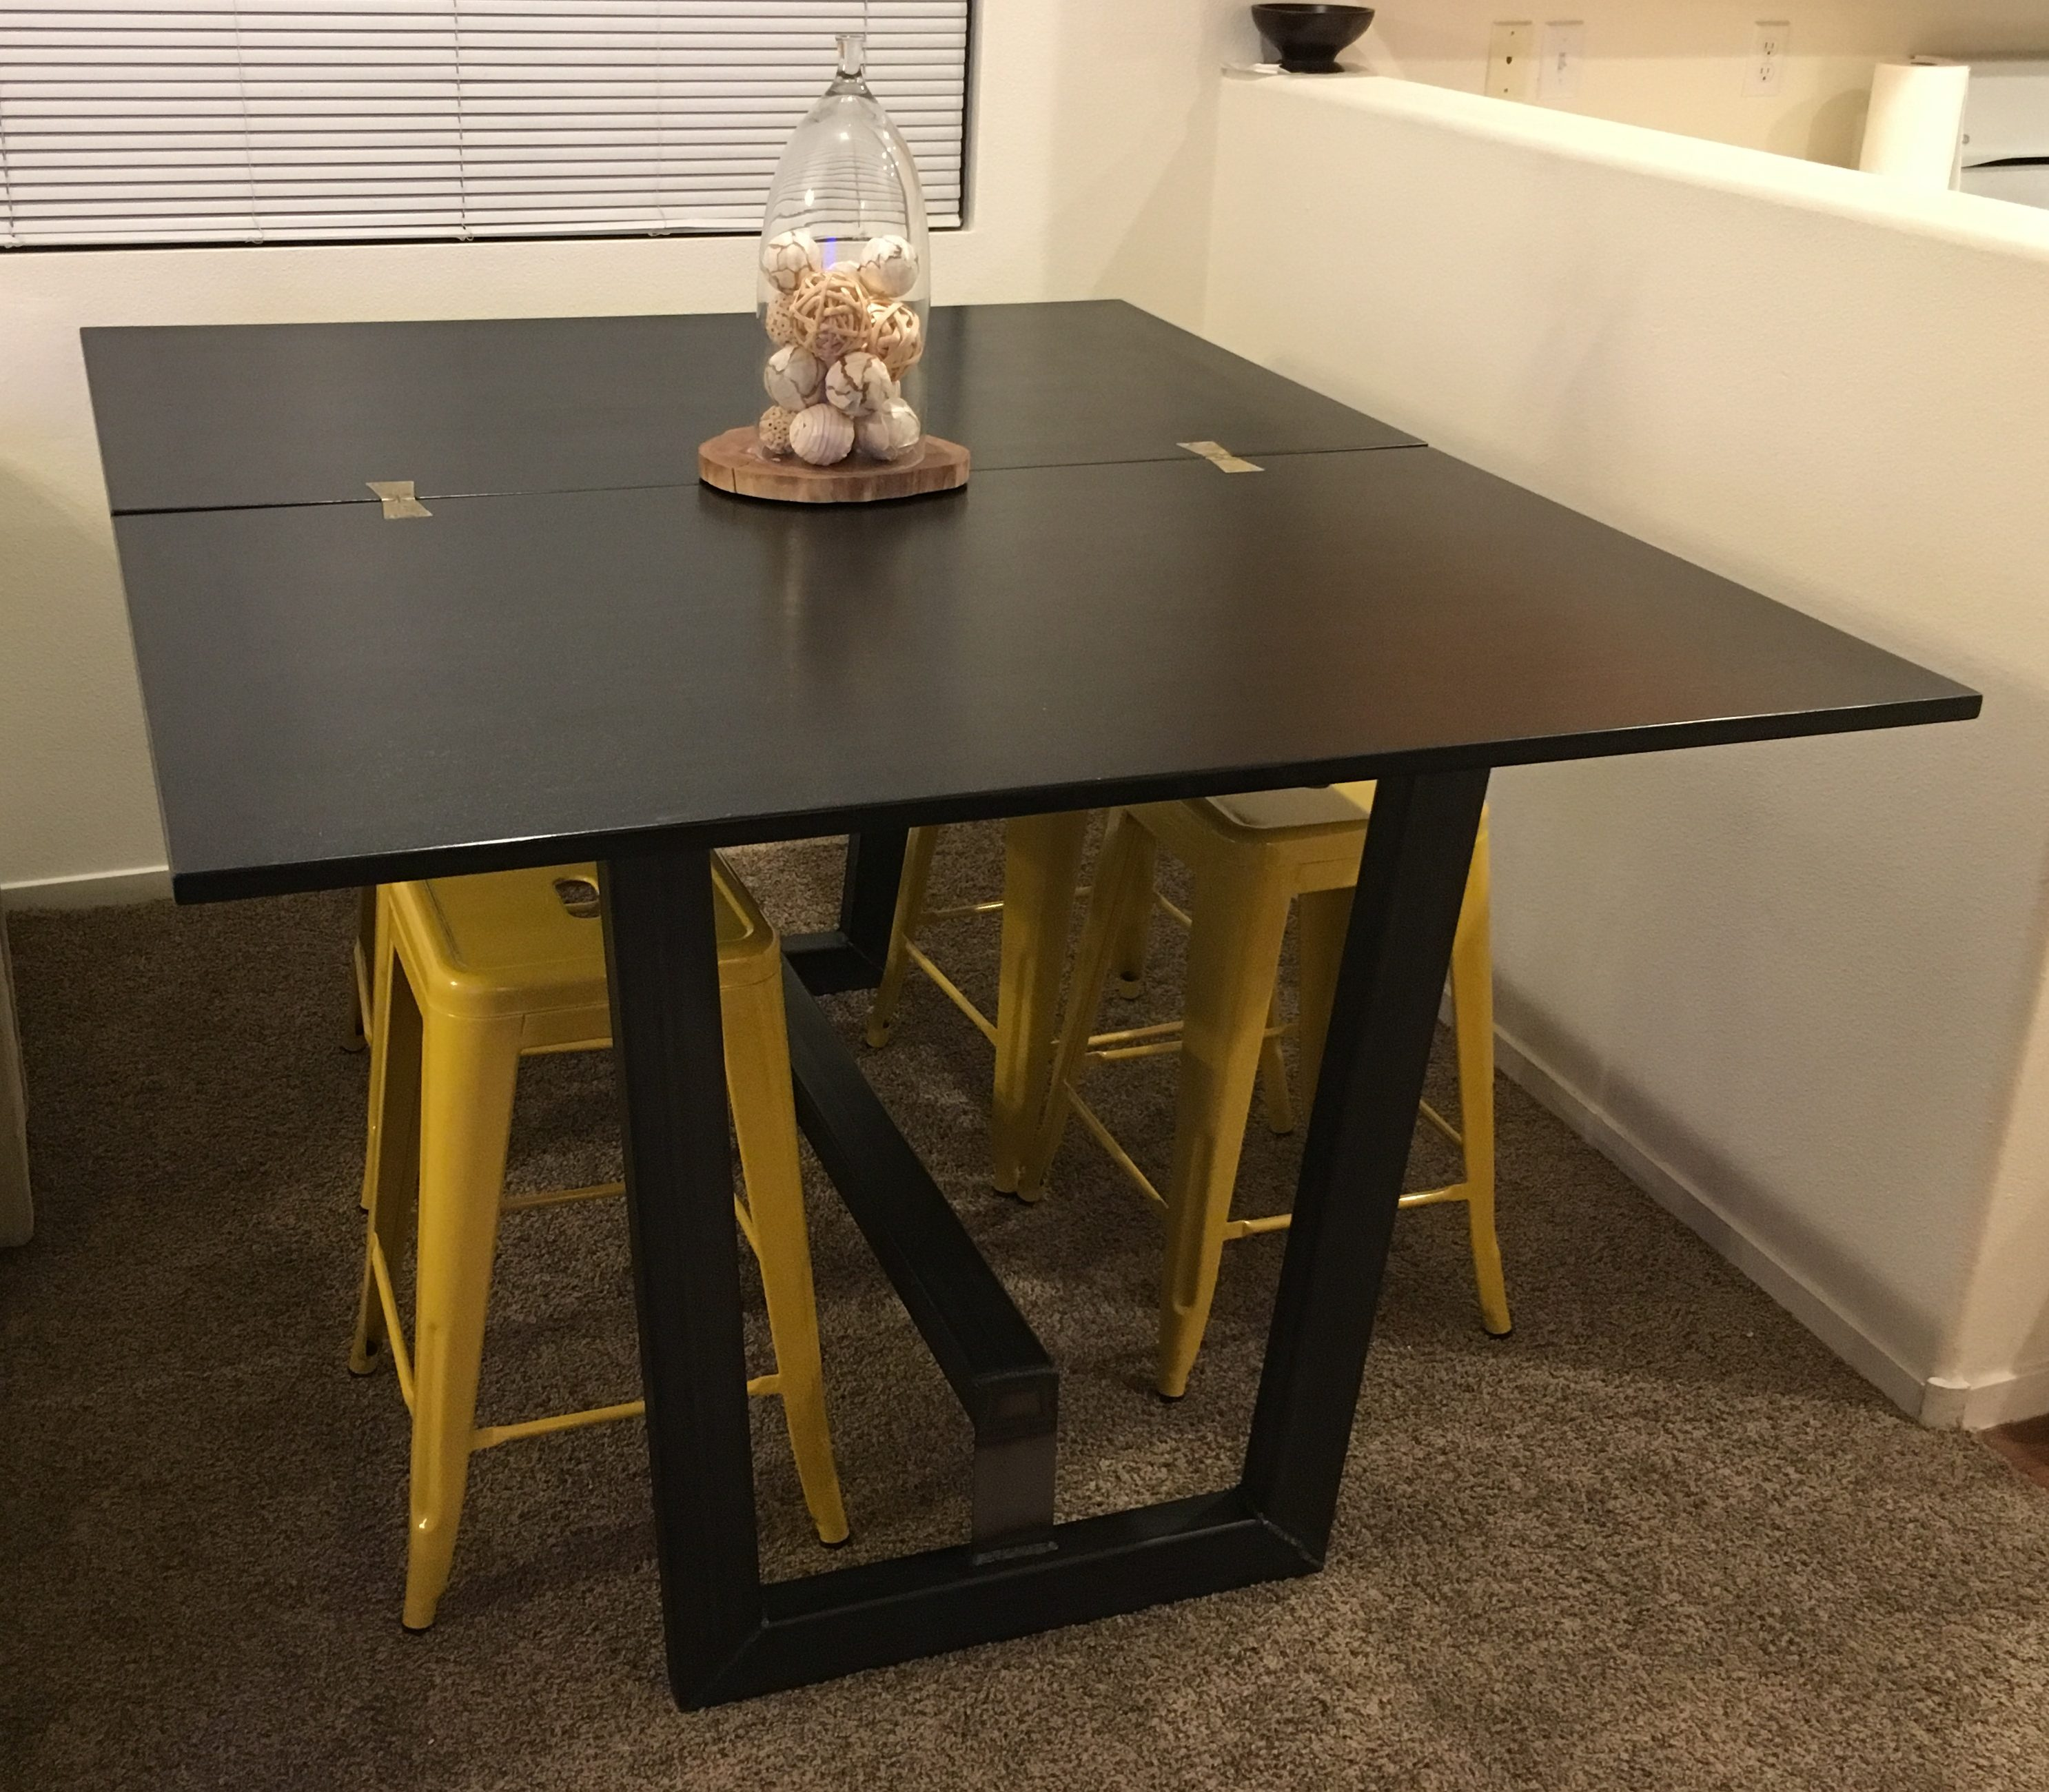 Dining table unfolded to be a larger table on a custom metal base.